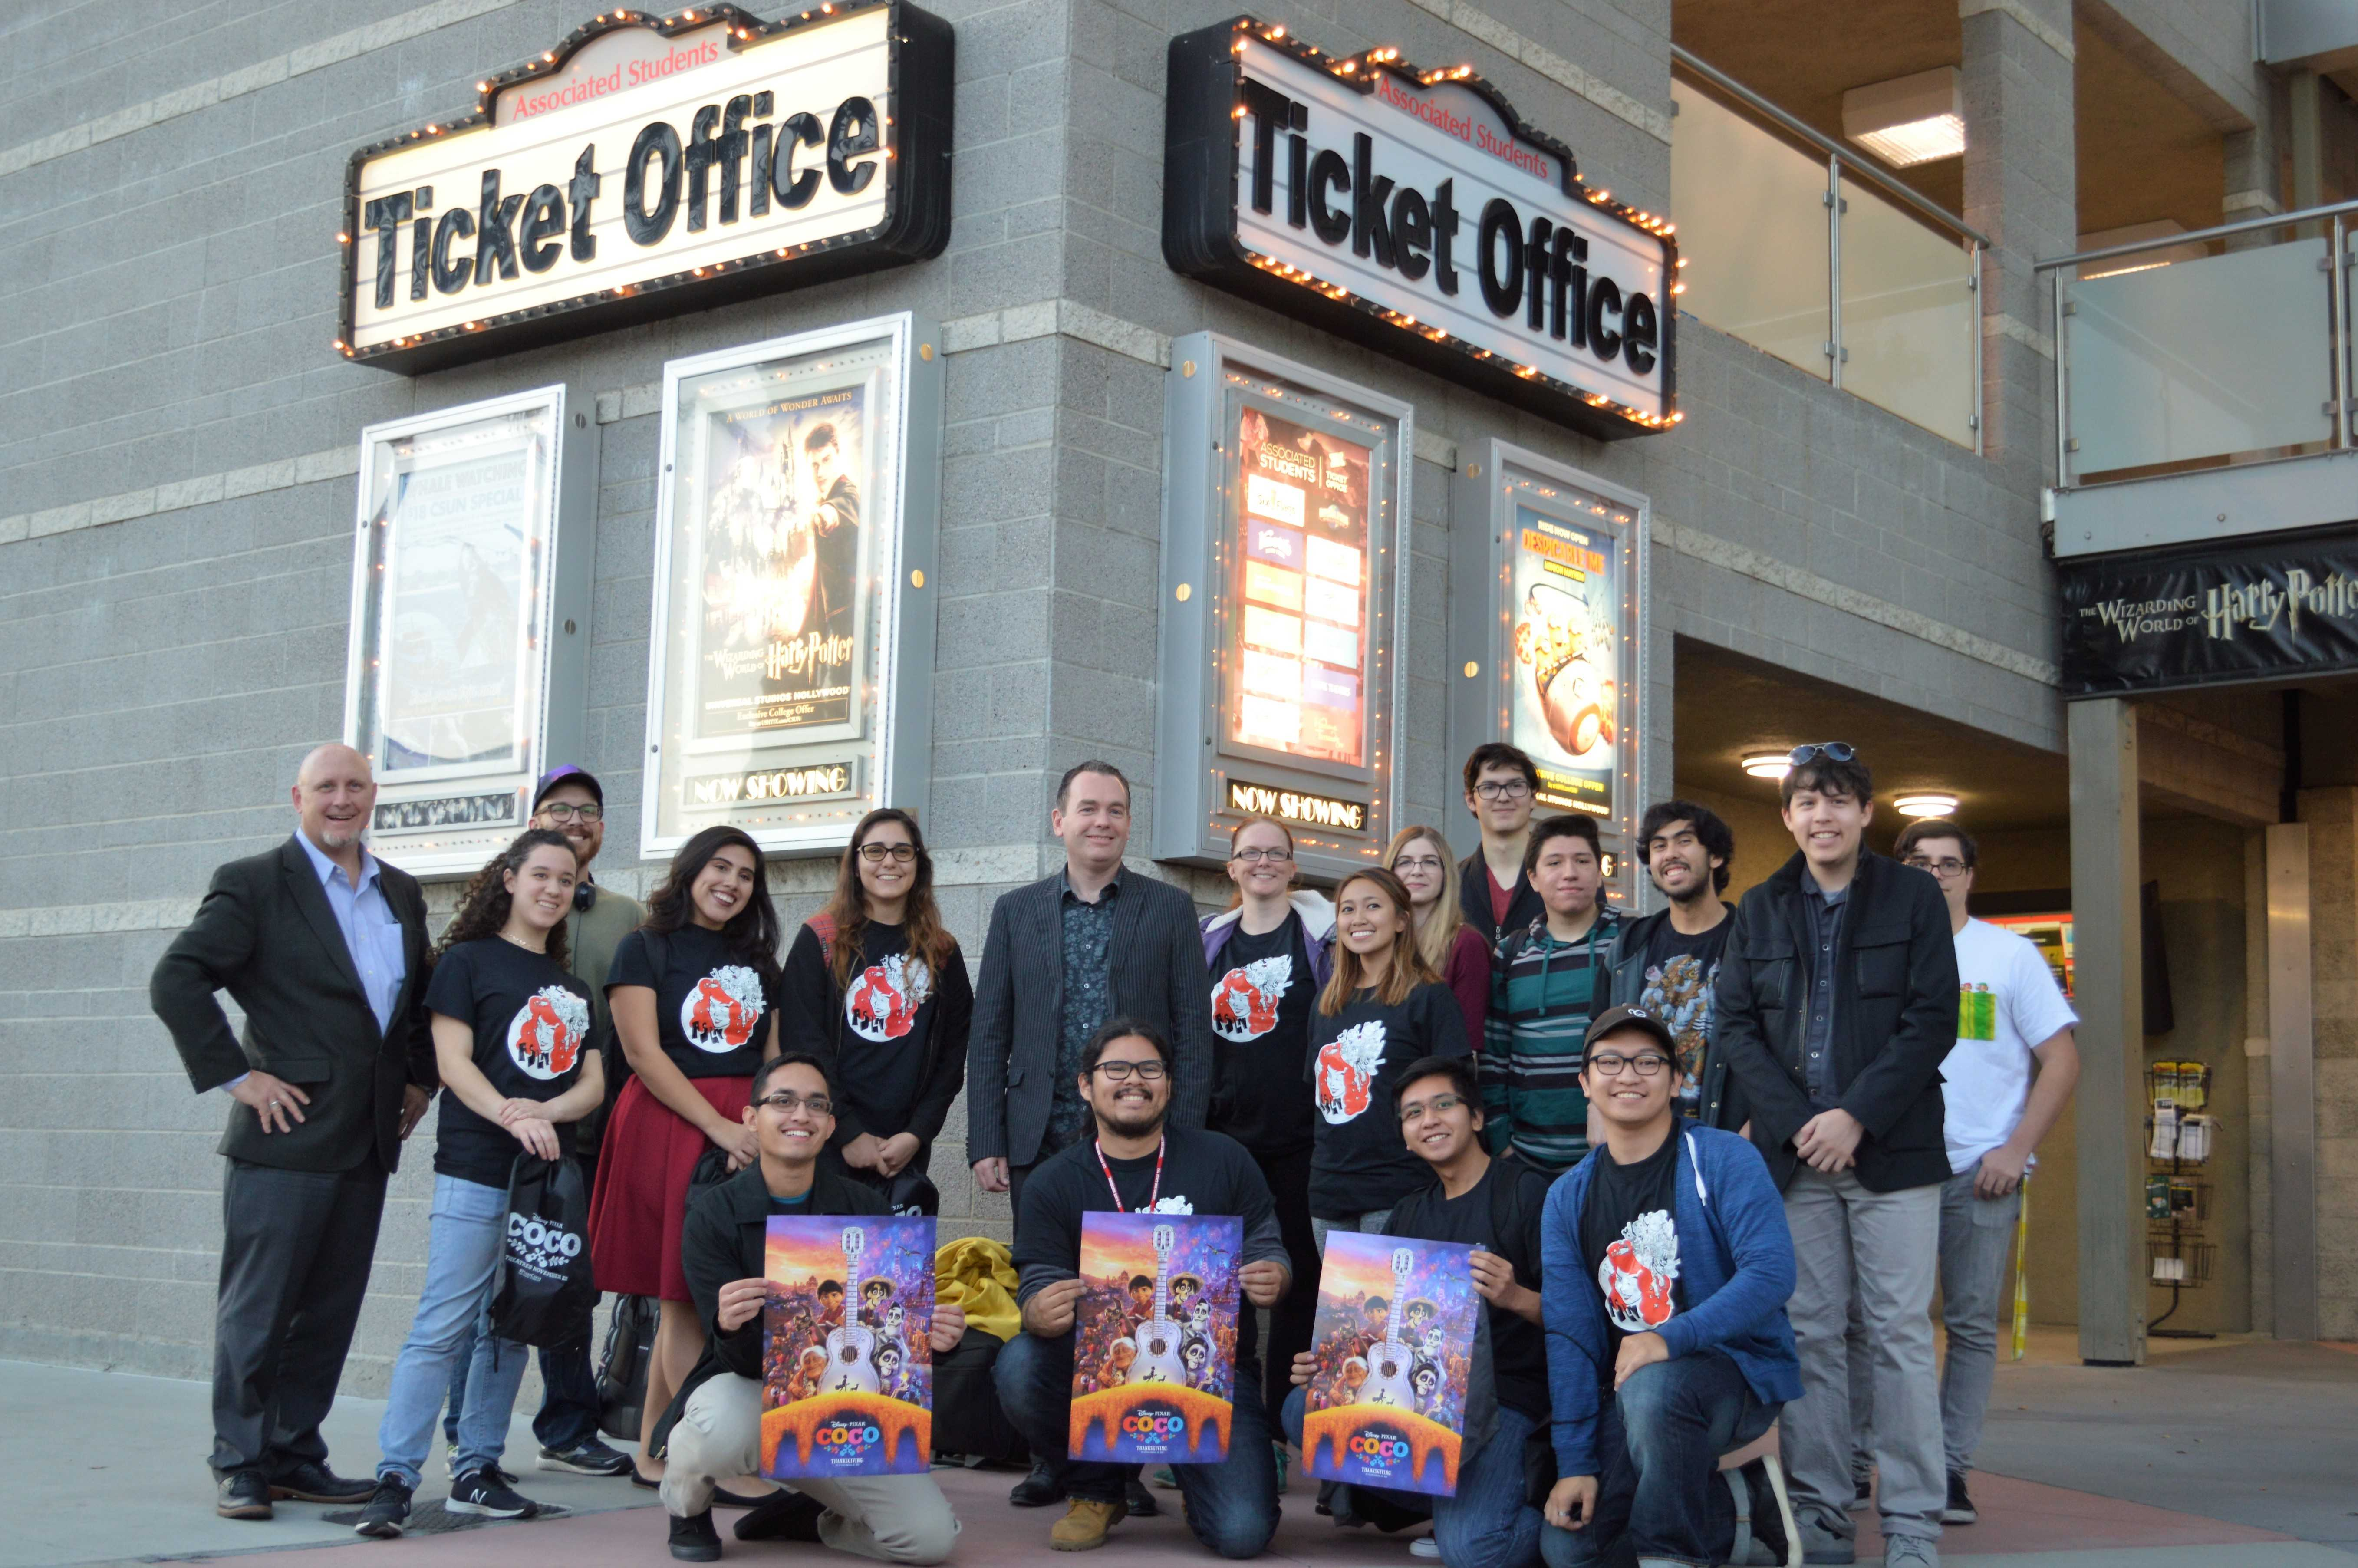 Byron Bashforth posed with the Animation Student League of Northridge and art professor Robert St. Pierre in front of the AS Ticket Office after the event.